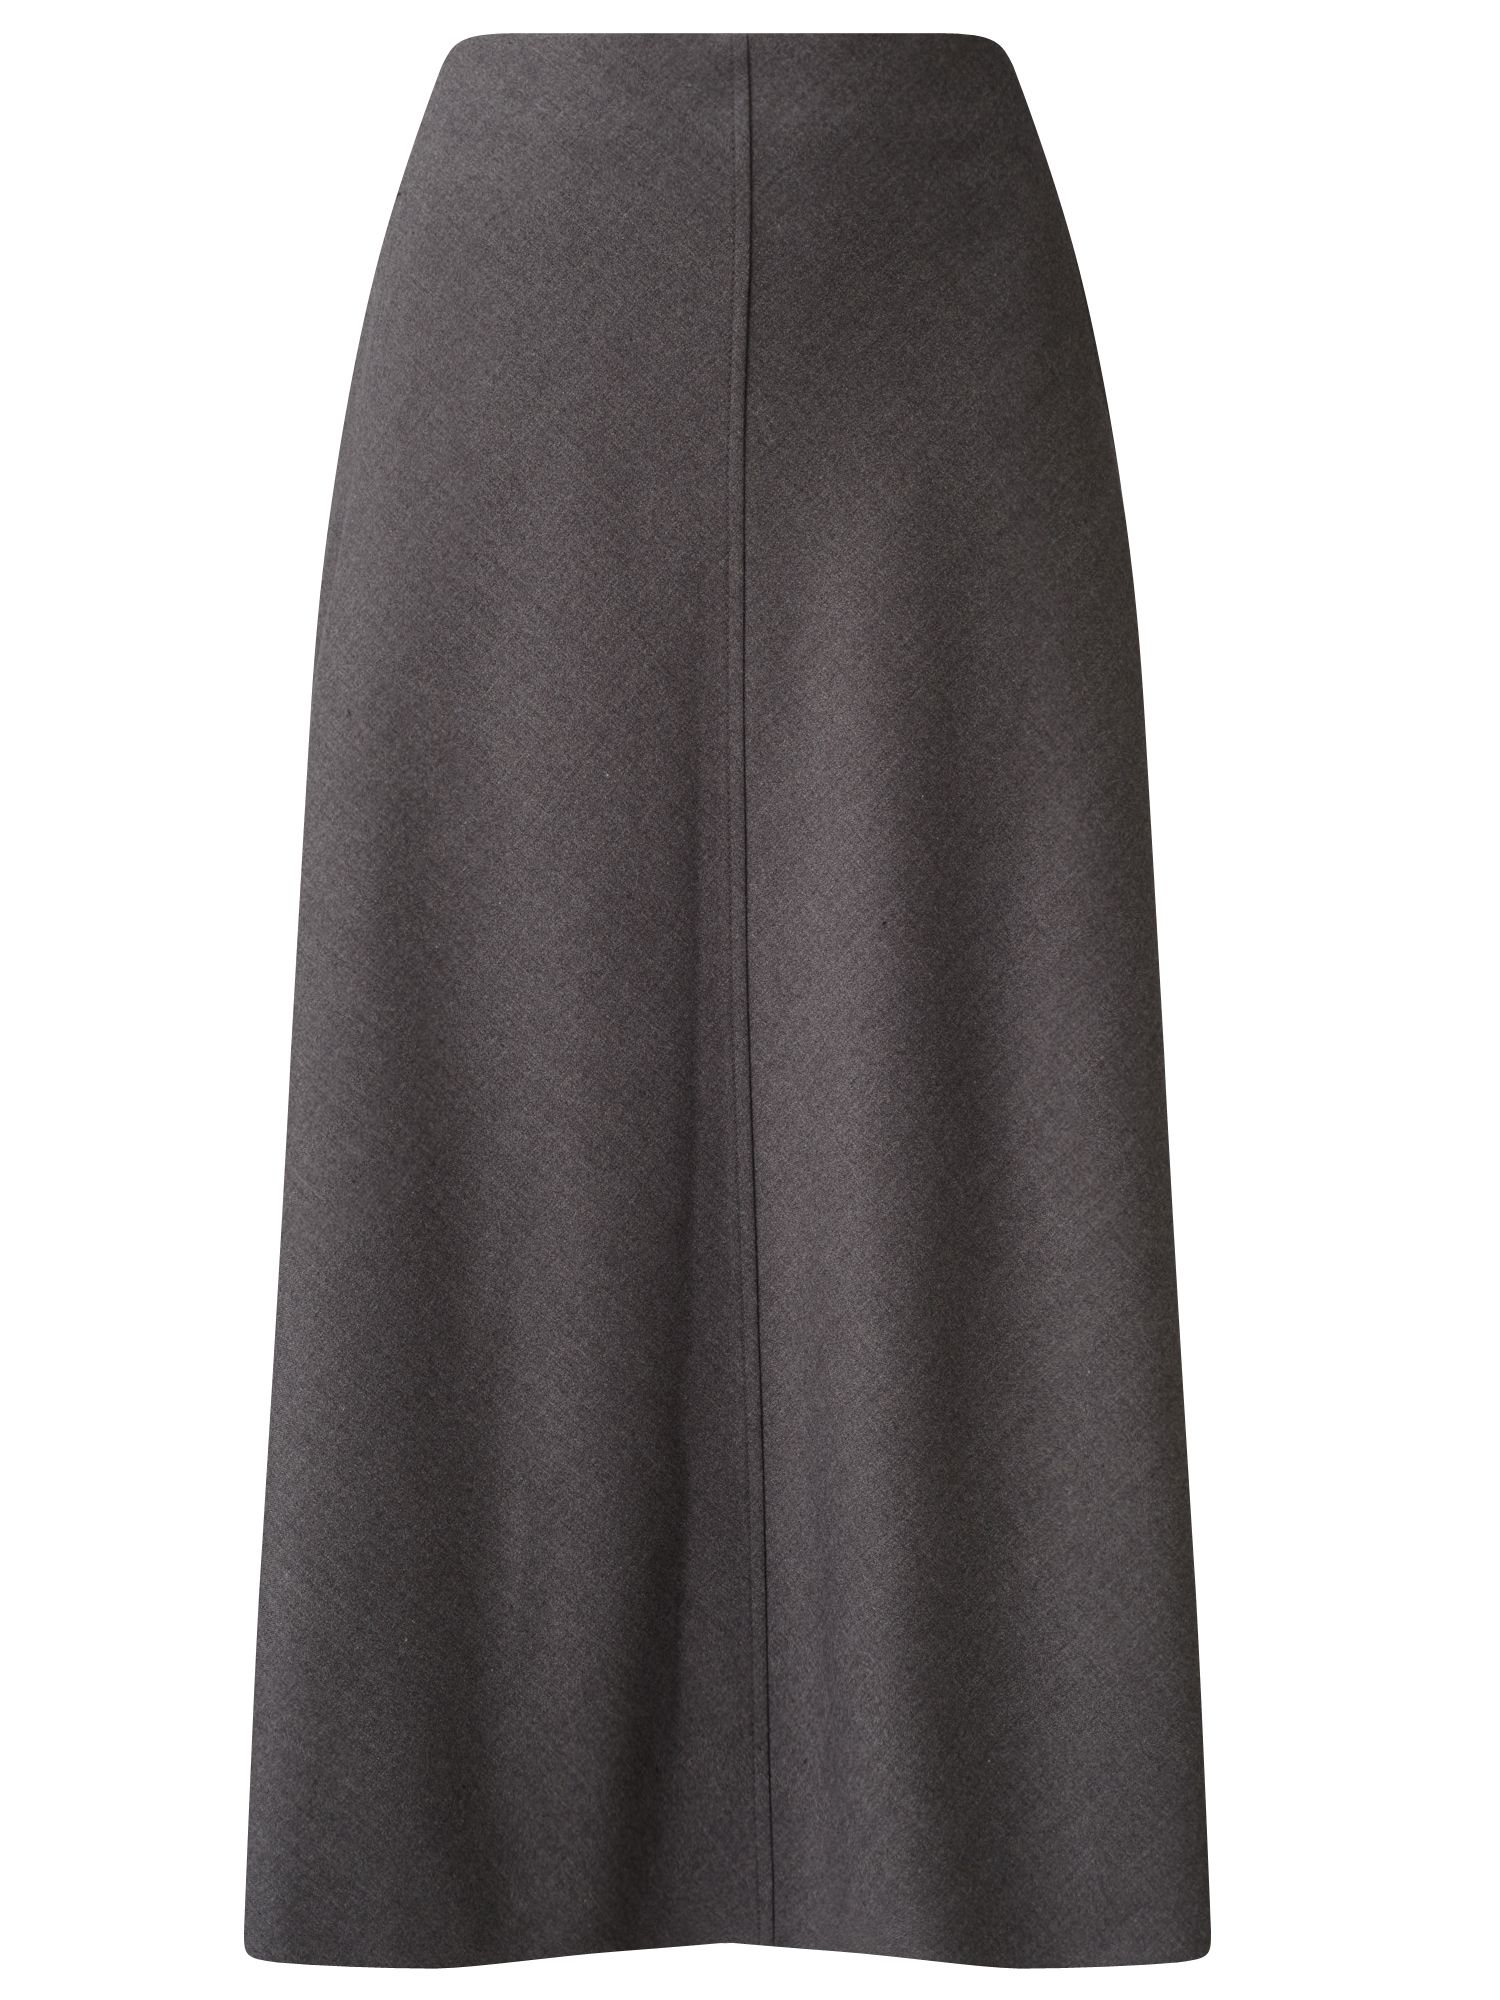 buy cheap grey pencil skirt compare s dresses